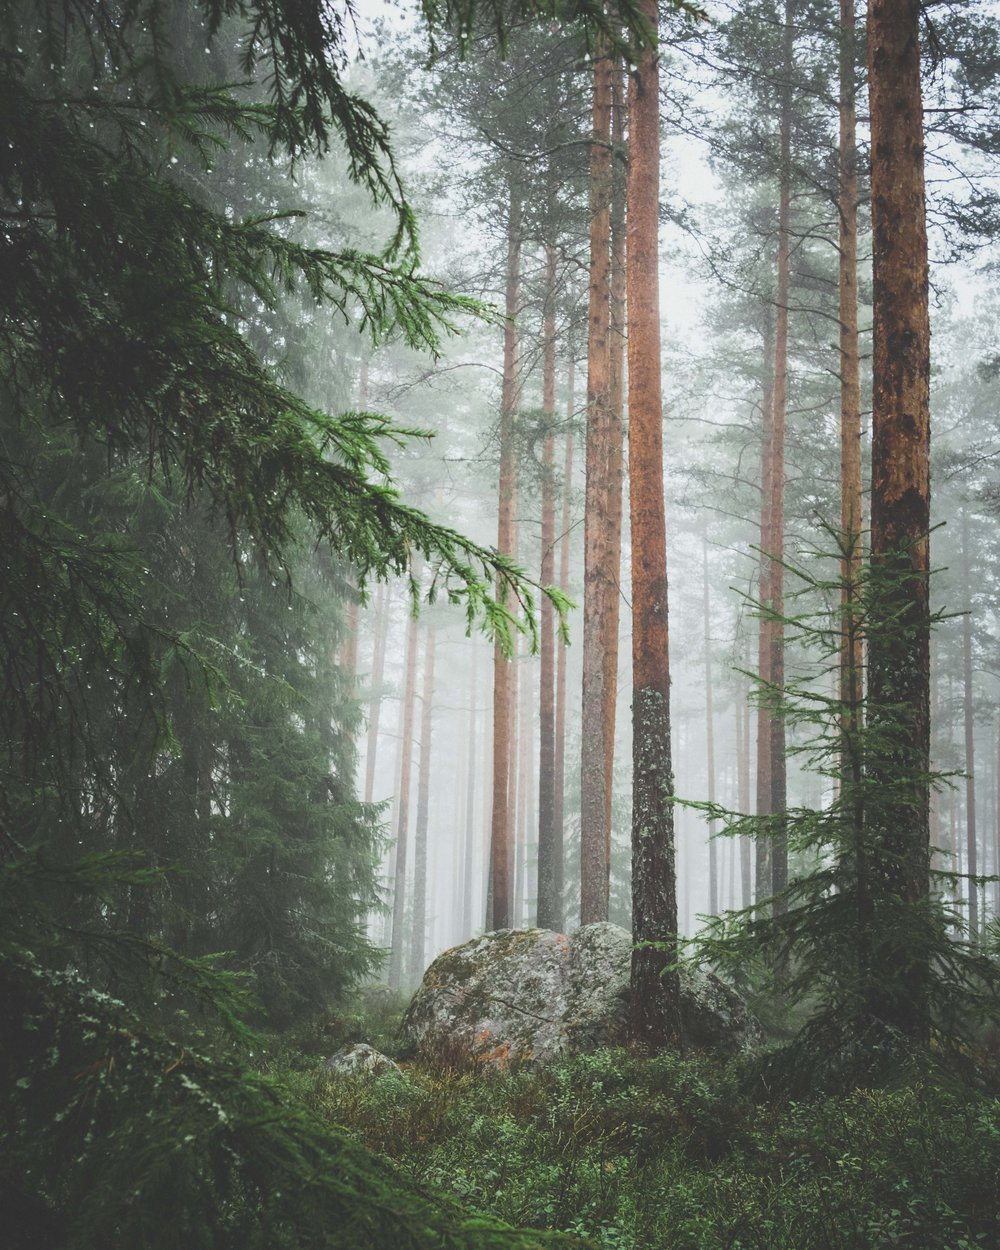 Trees in mist jachan-devol-unsplash.jpg